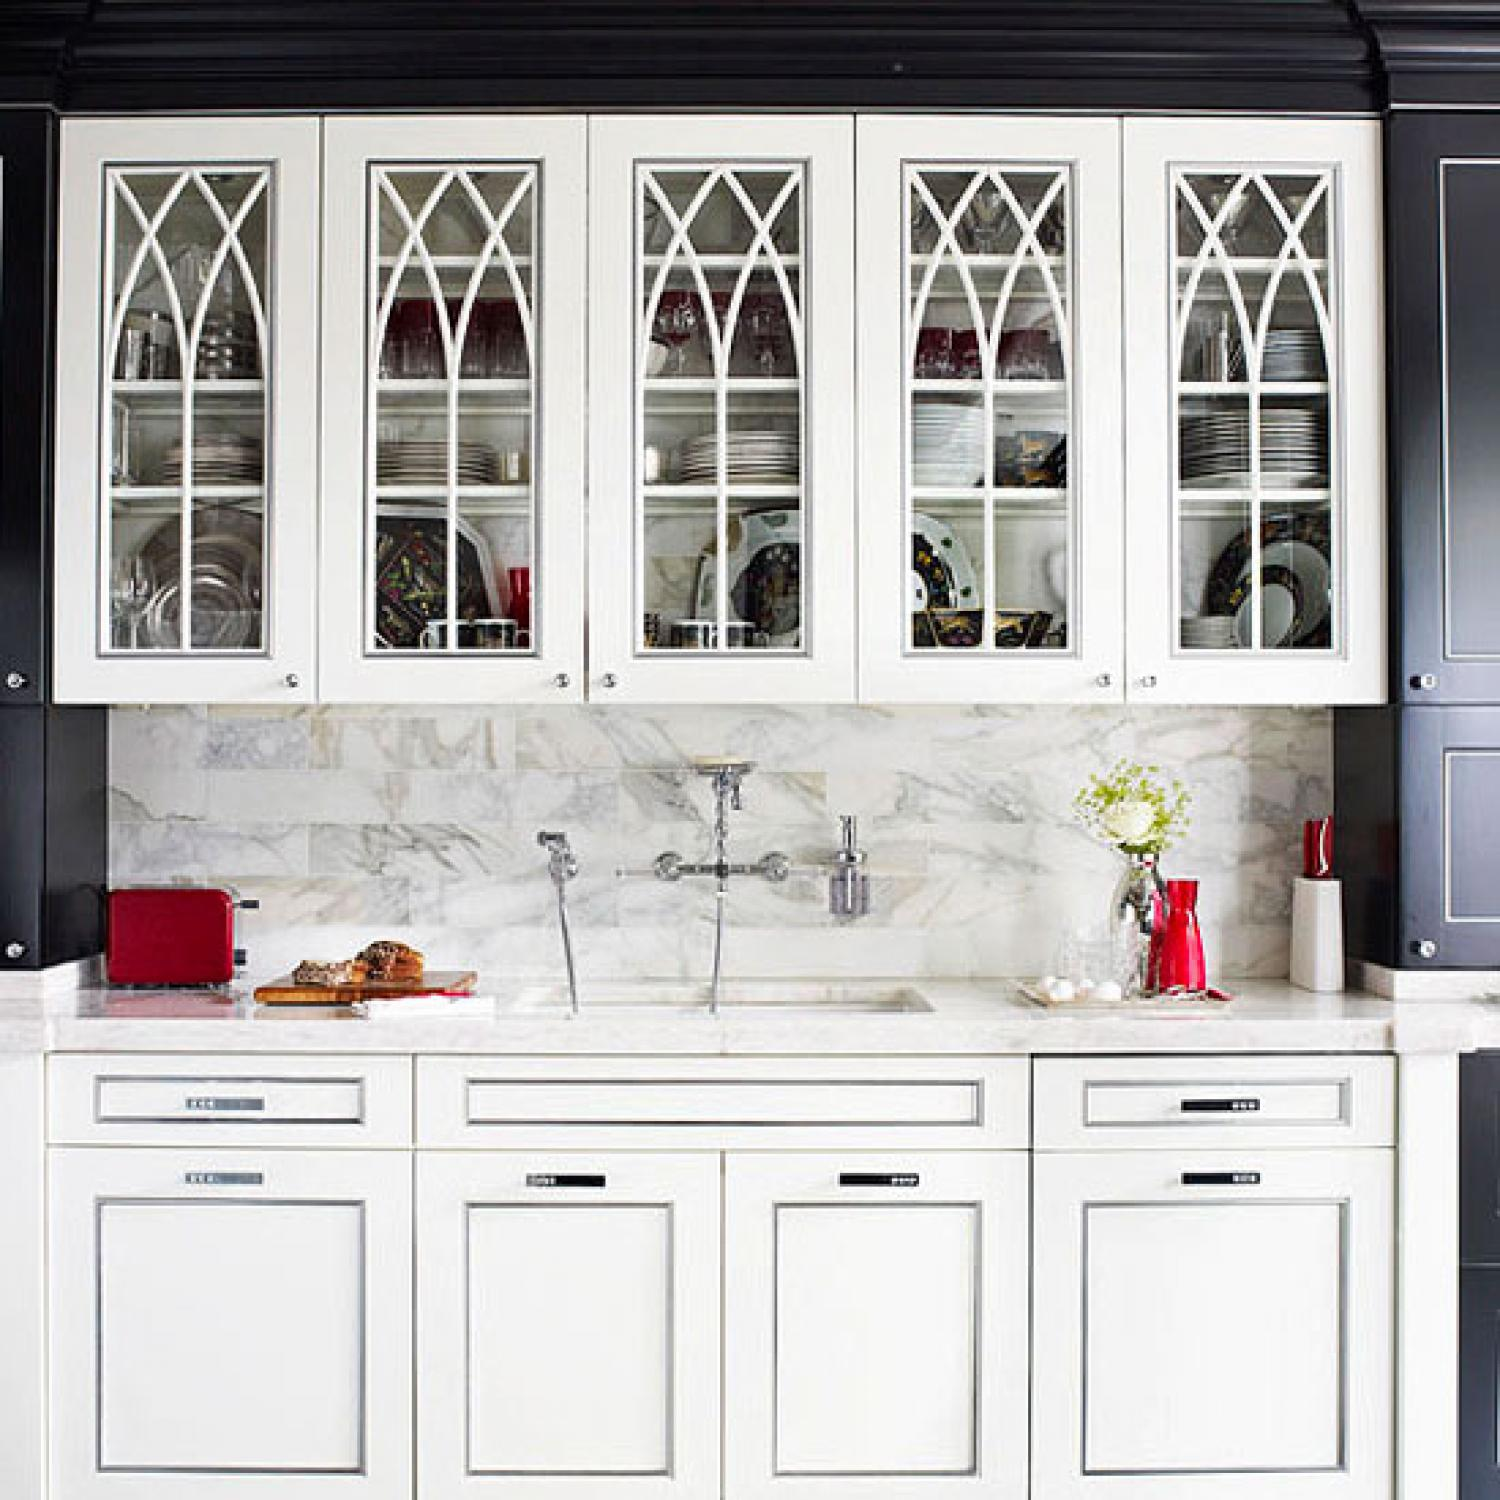 window mullion inserts accent cabinet doors styles from dura supreme accent doors include. Black Bedroom Furniture Sets. Home Design Ideas